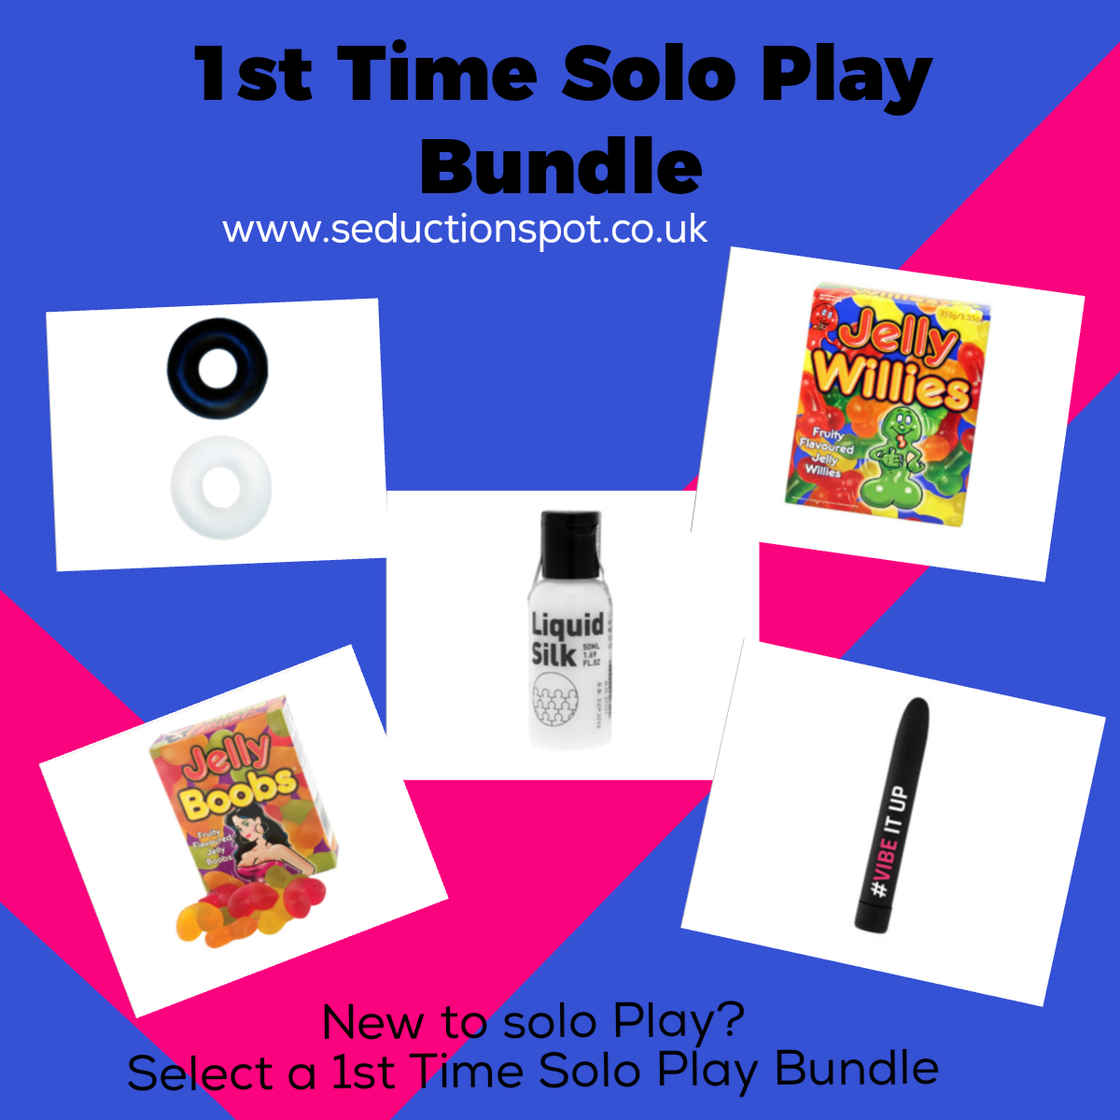 Image of 1st Time Solo Play Bundle